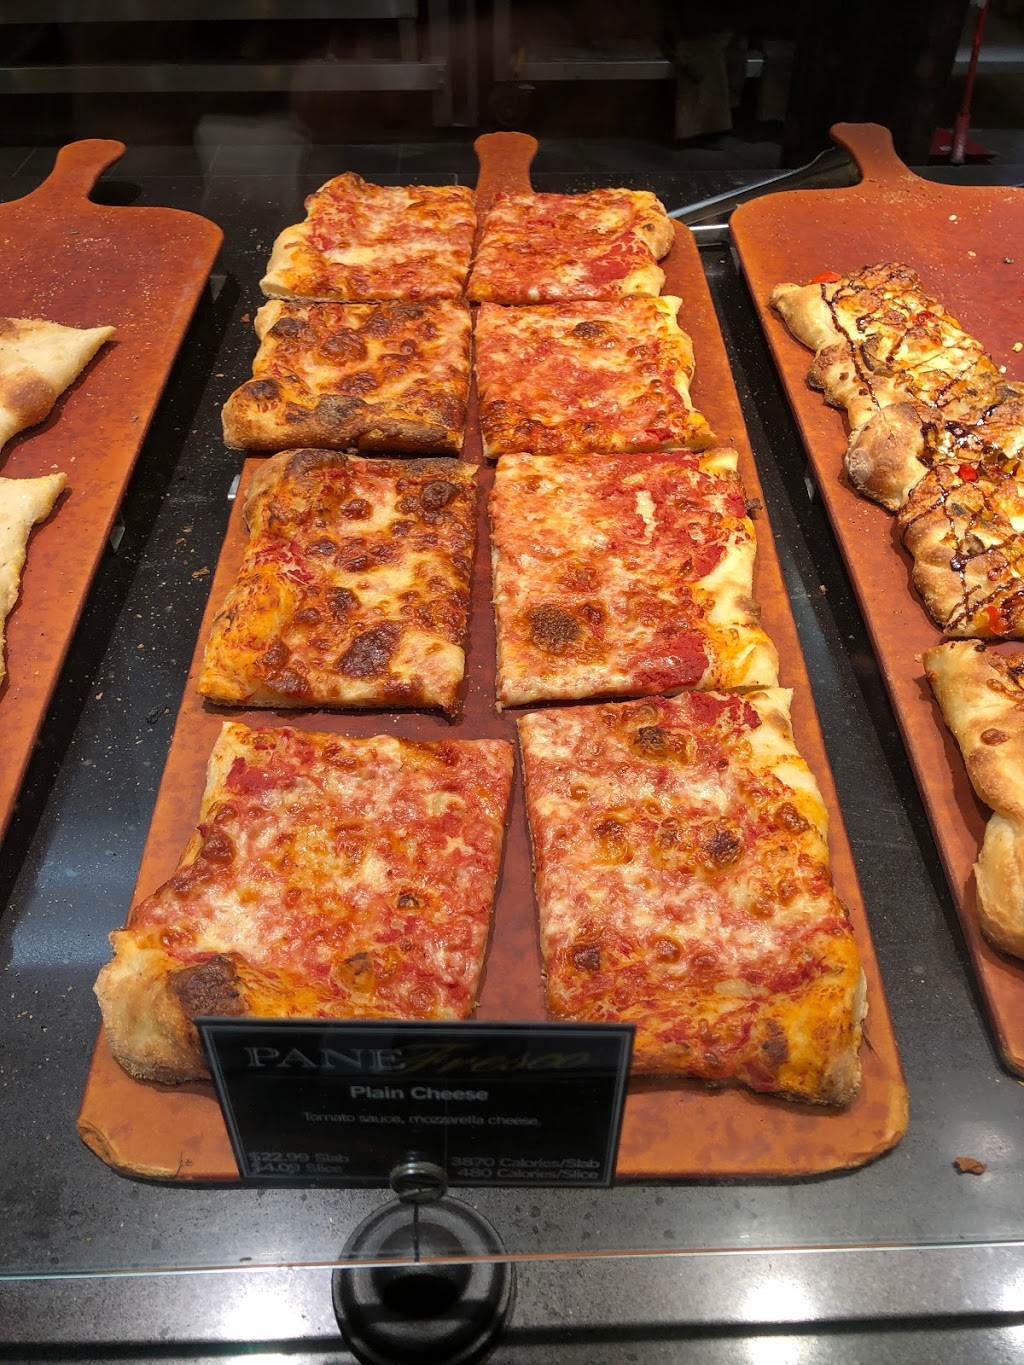 Fortinos | bakery | 8585 York Regional Rd 27, Vaughan, ON L4L 1V2, Canada | 9058517632 OR +1 905-851-7632